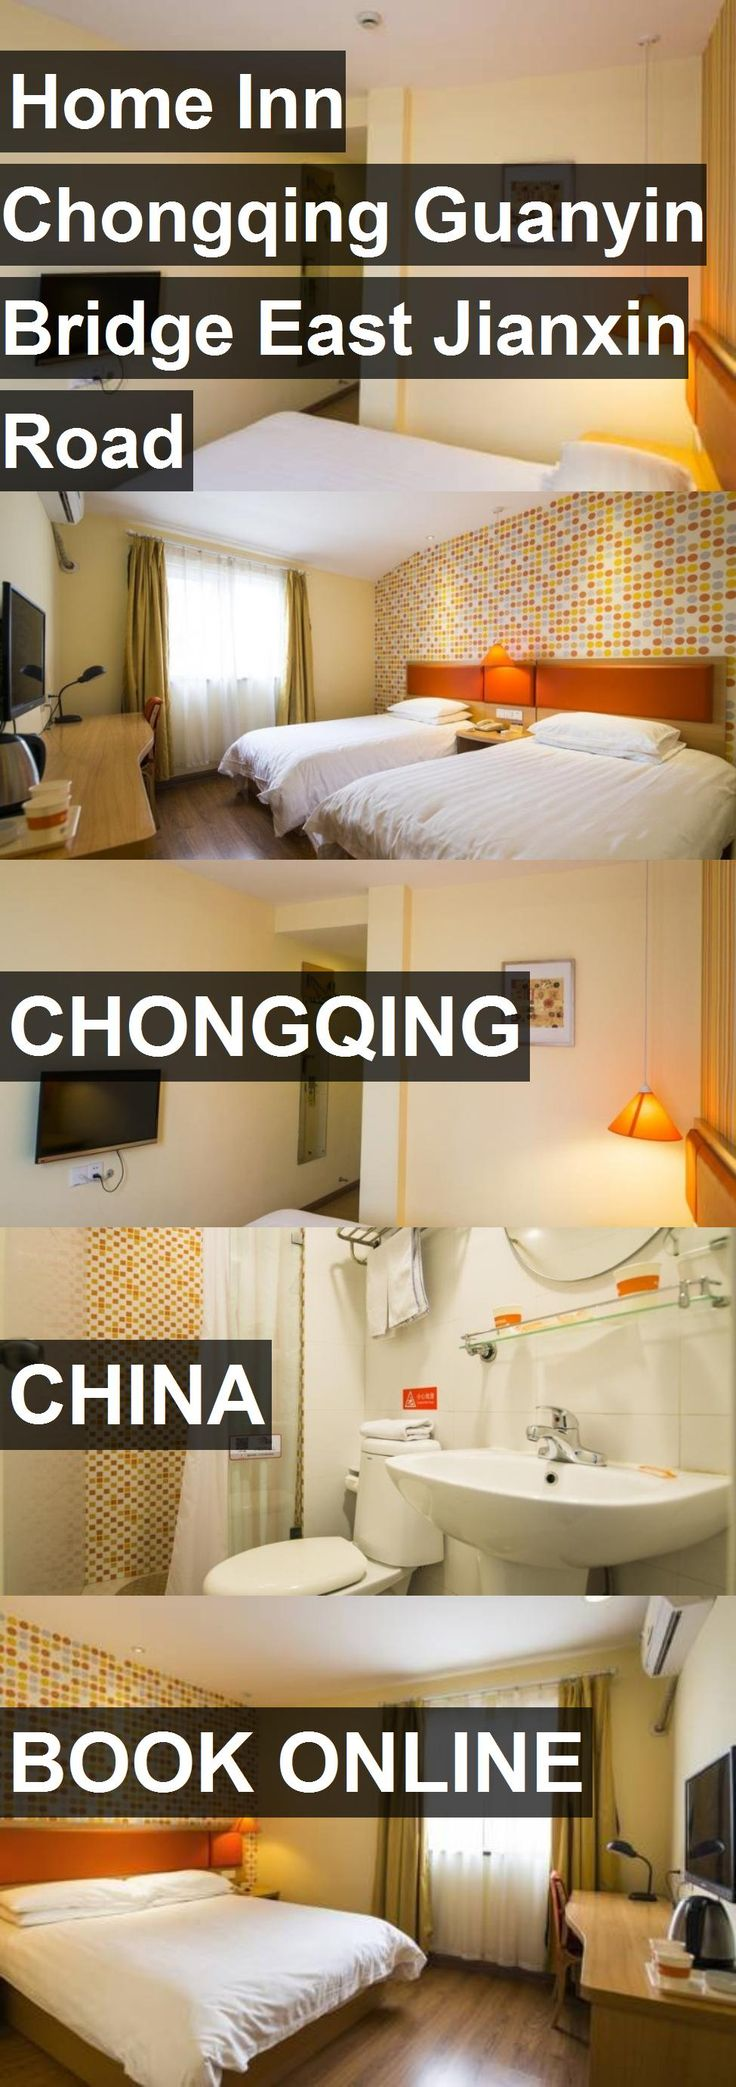 Hotel Home Inn Chongqing Guanyin Bridge East Jianxin Road in Chongqing, China. For more information, photos, reviews and best prices please follow the link. #China #Chongqing #travel #vacation #hotel